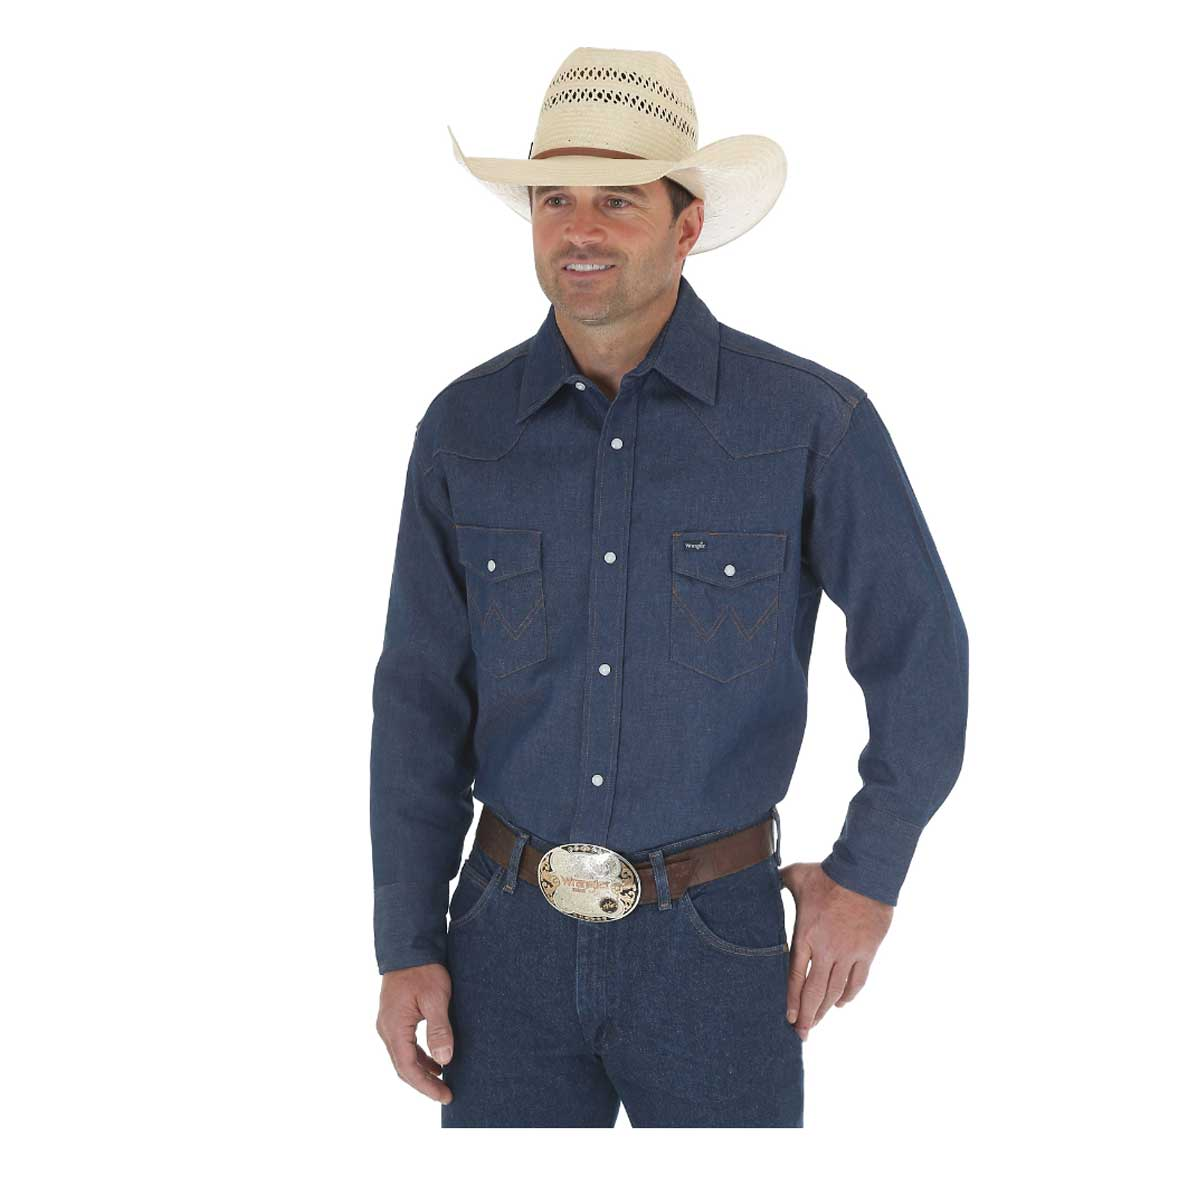 Wrangler Men's Cowboy Cut Work Western Rigid Denim Long Sleeve Shirt